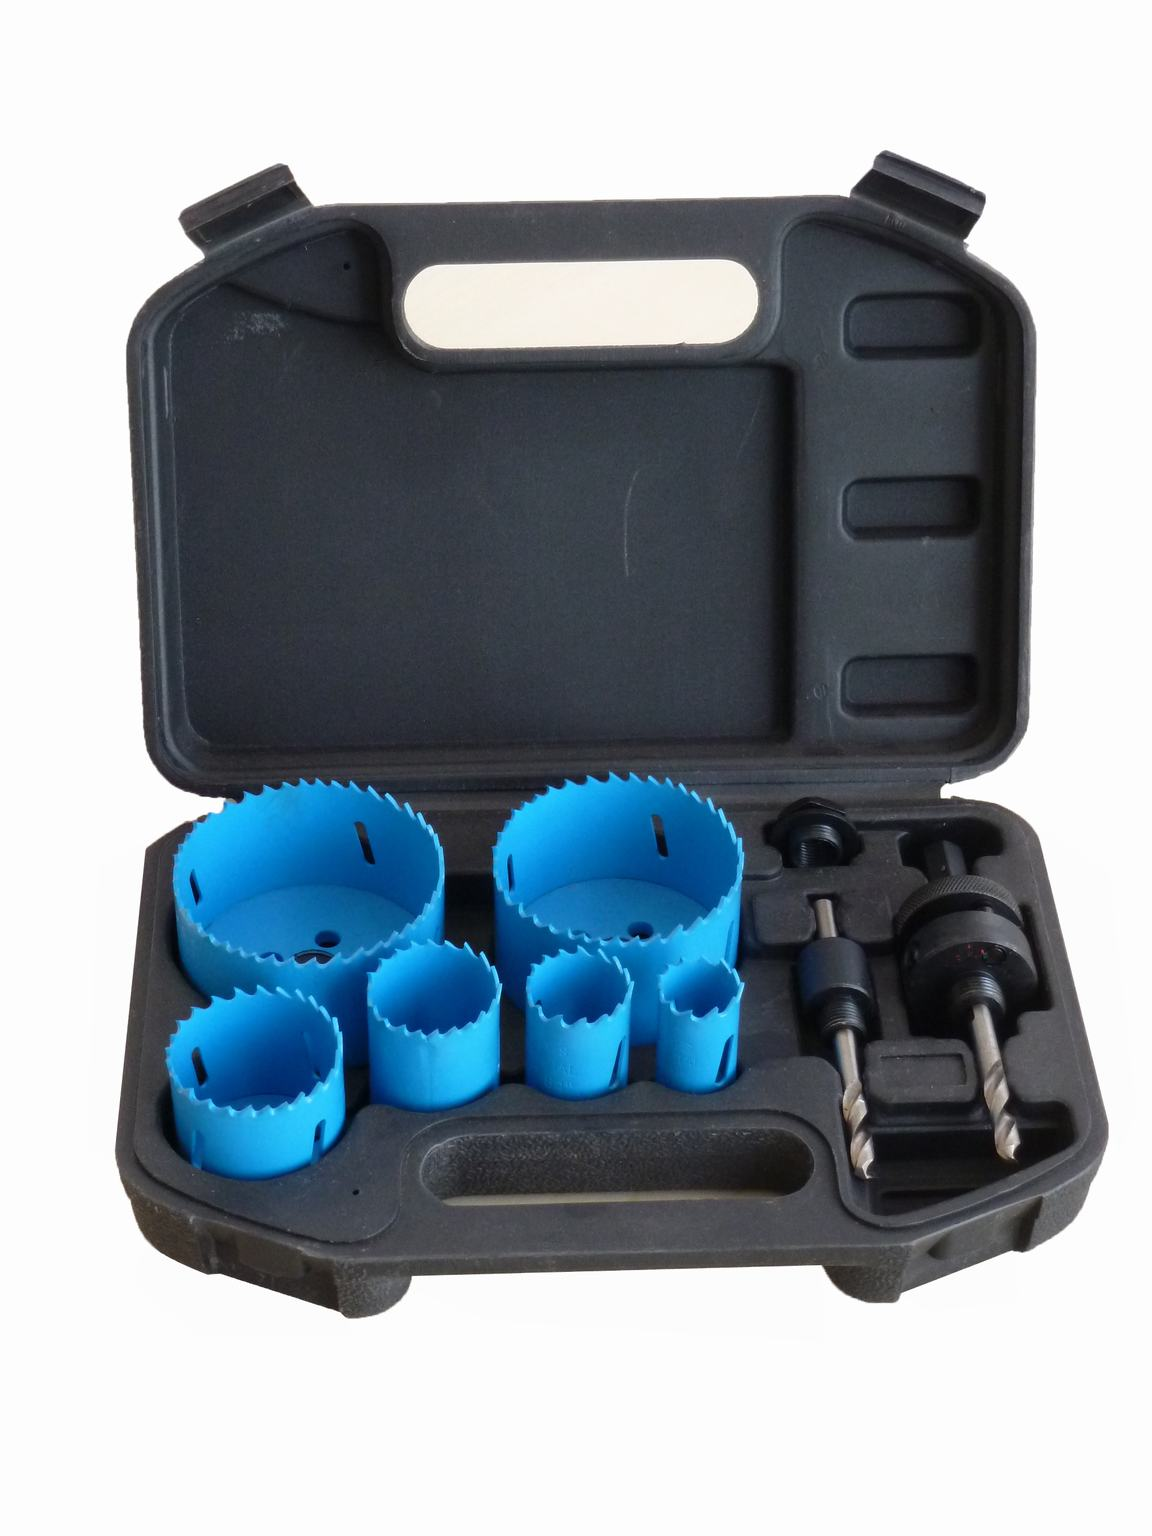 10 PCS Bi-Metal Hole Saw Set Kit